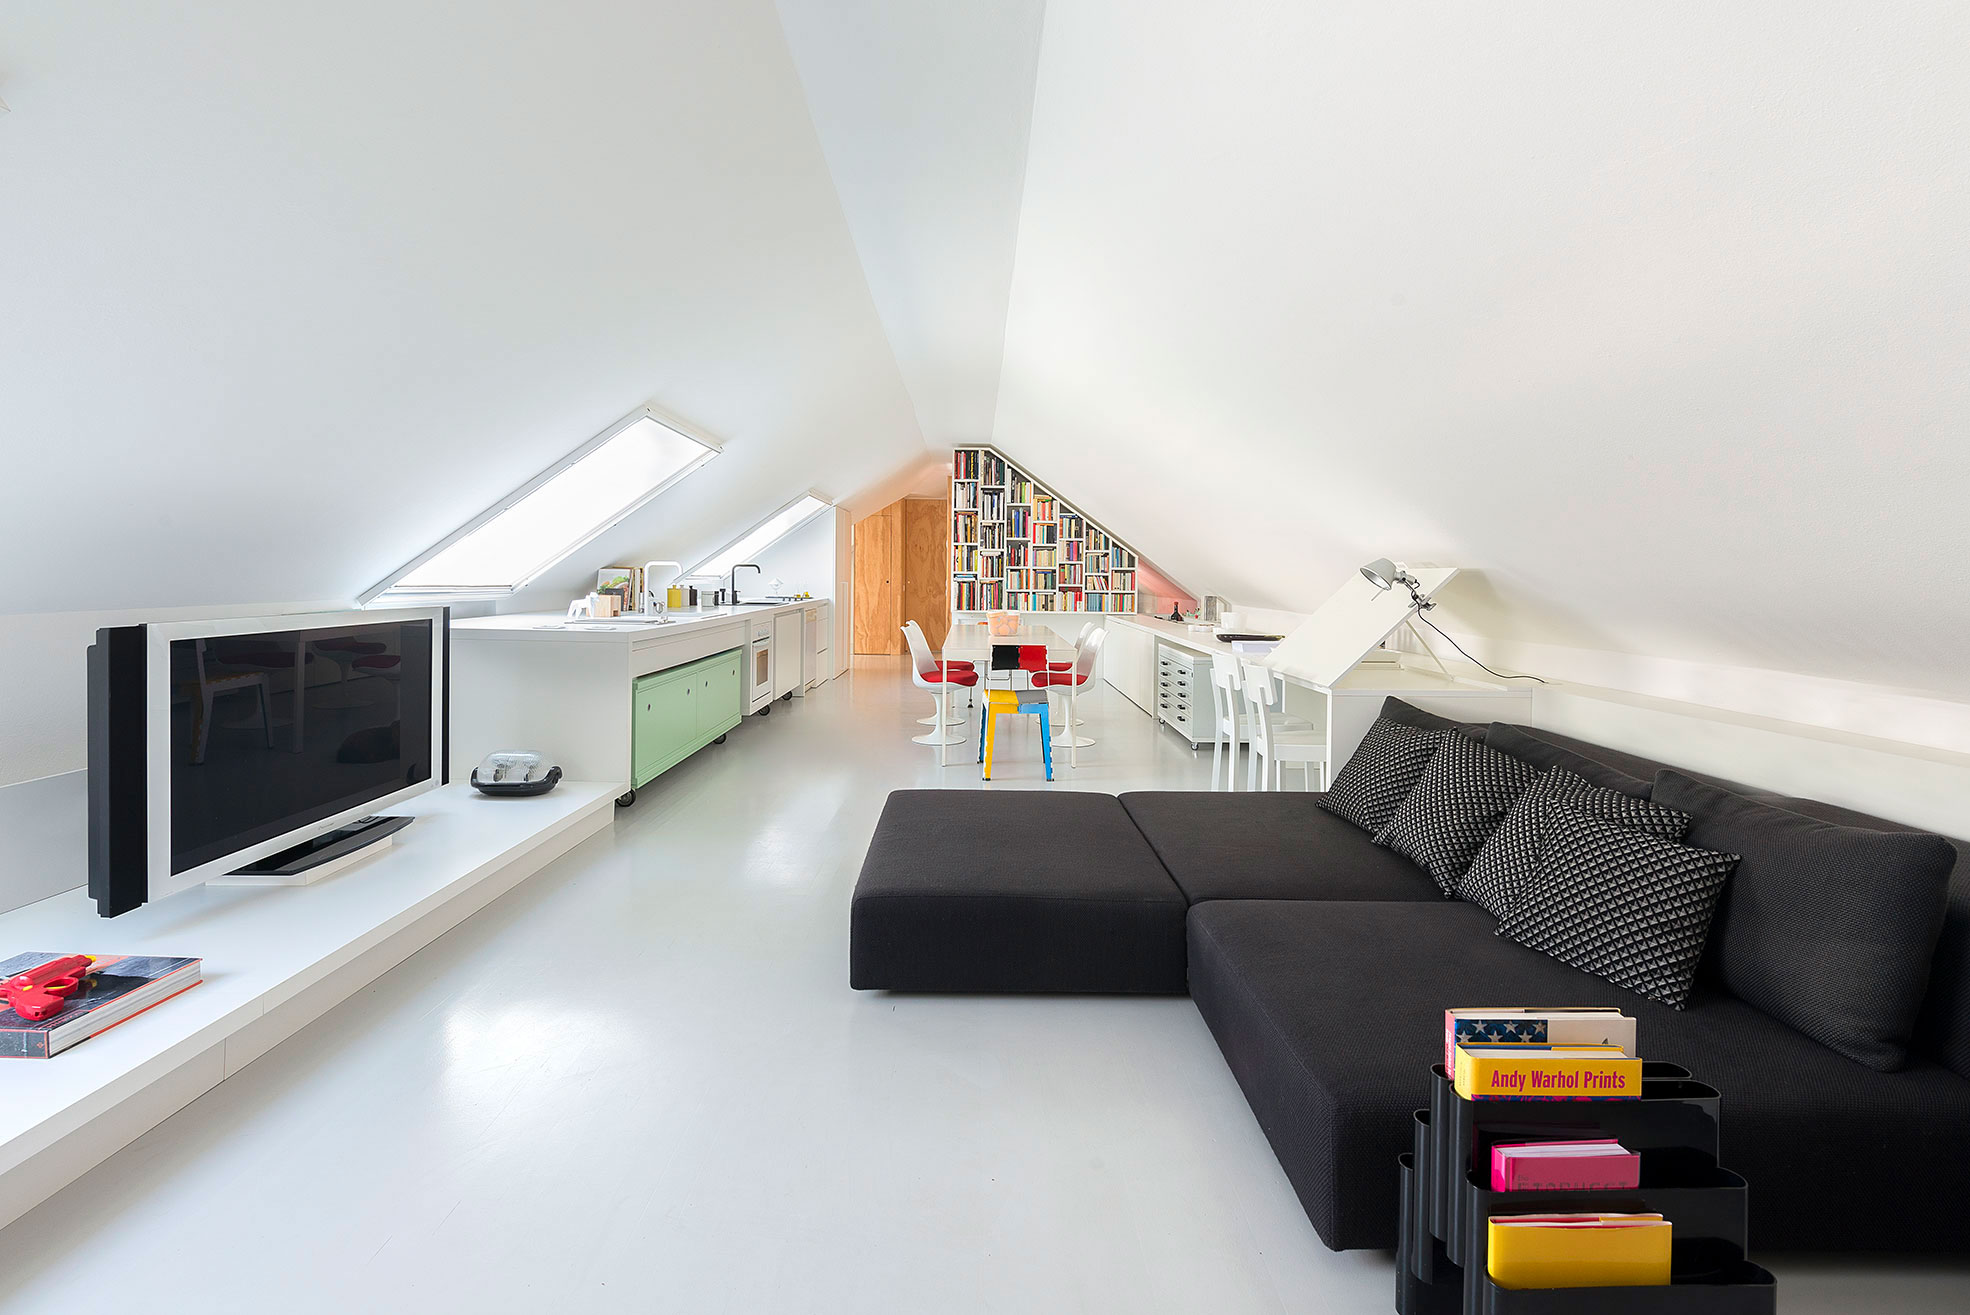 Living room and Kitchen in an attic apartment Photographer Maria teresa Furnari